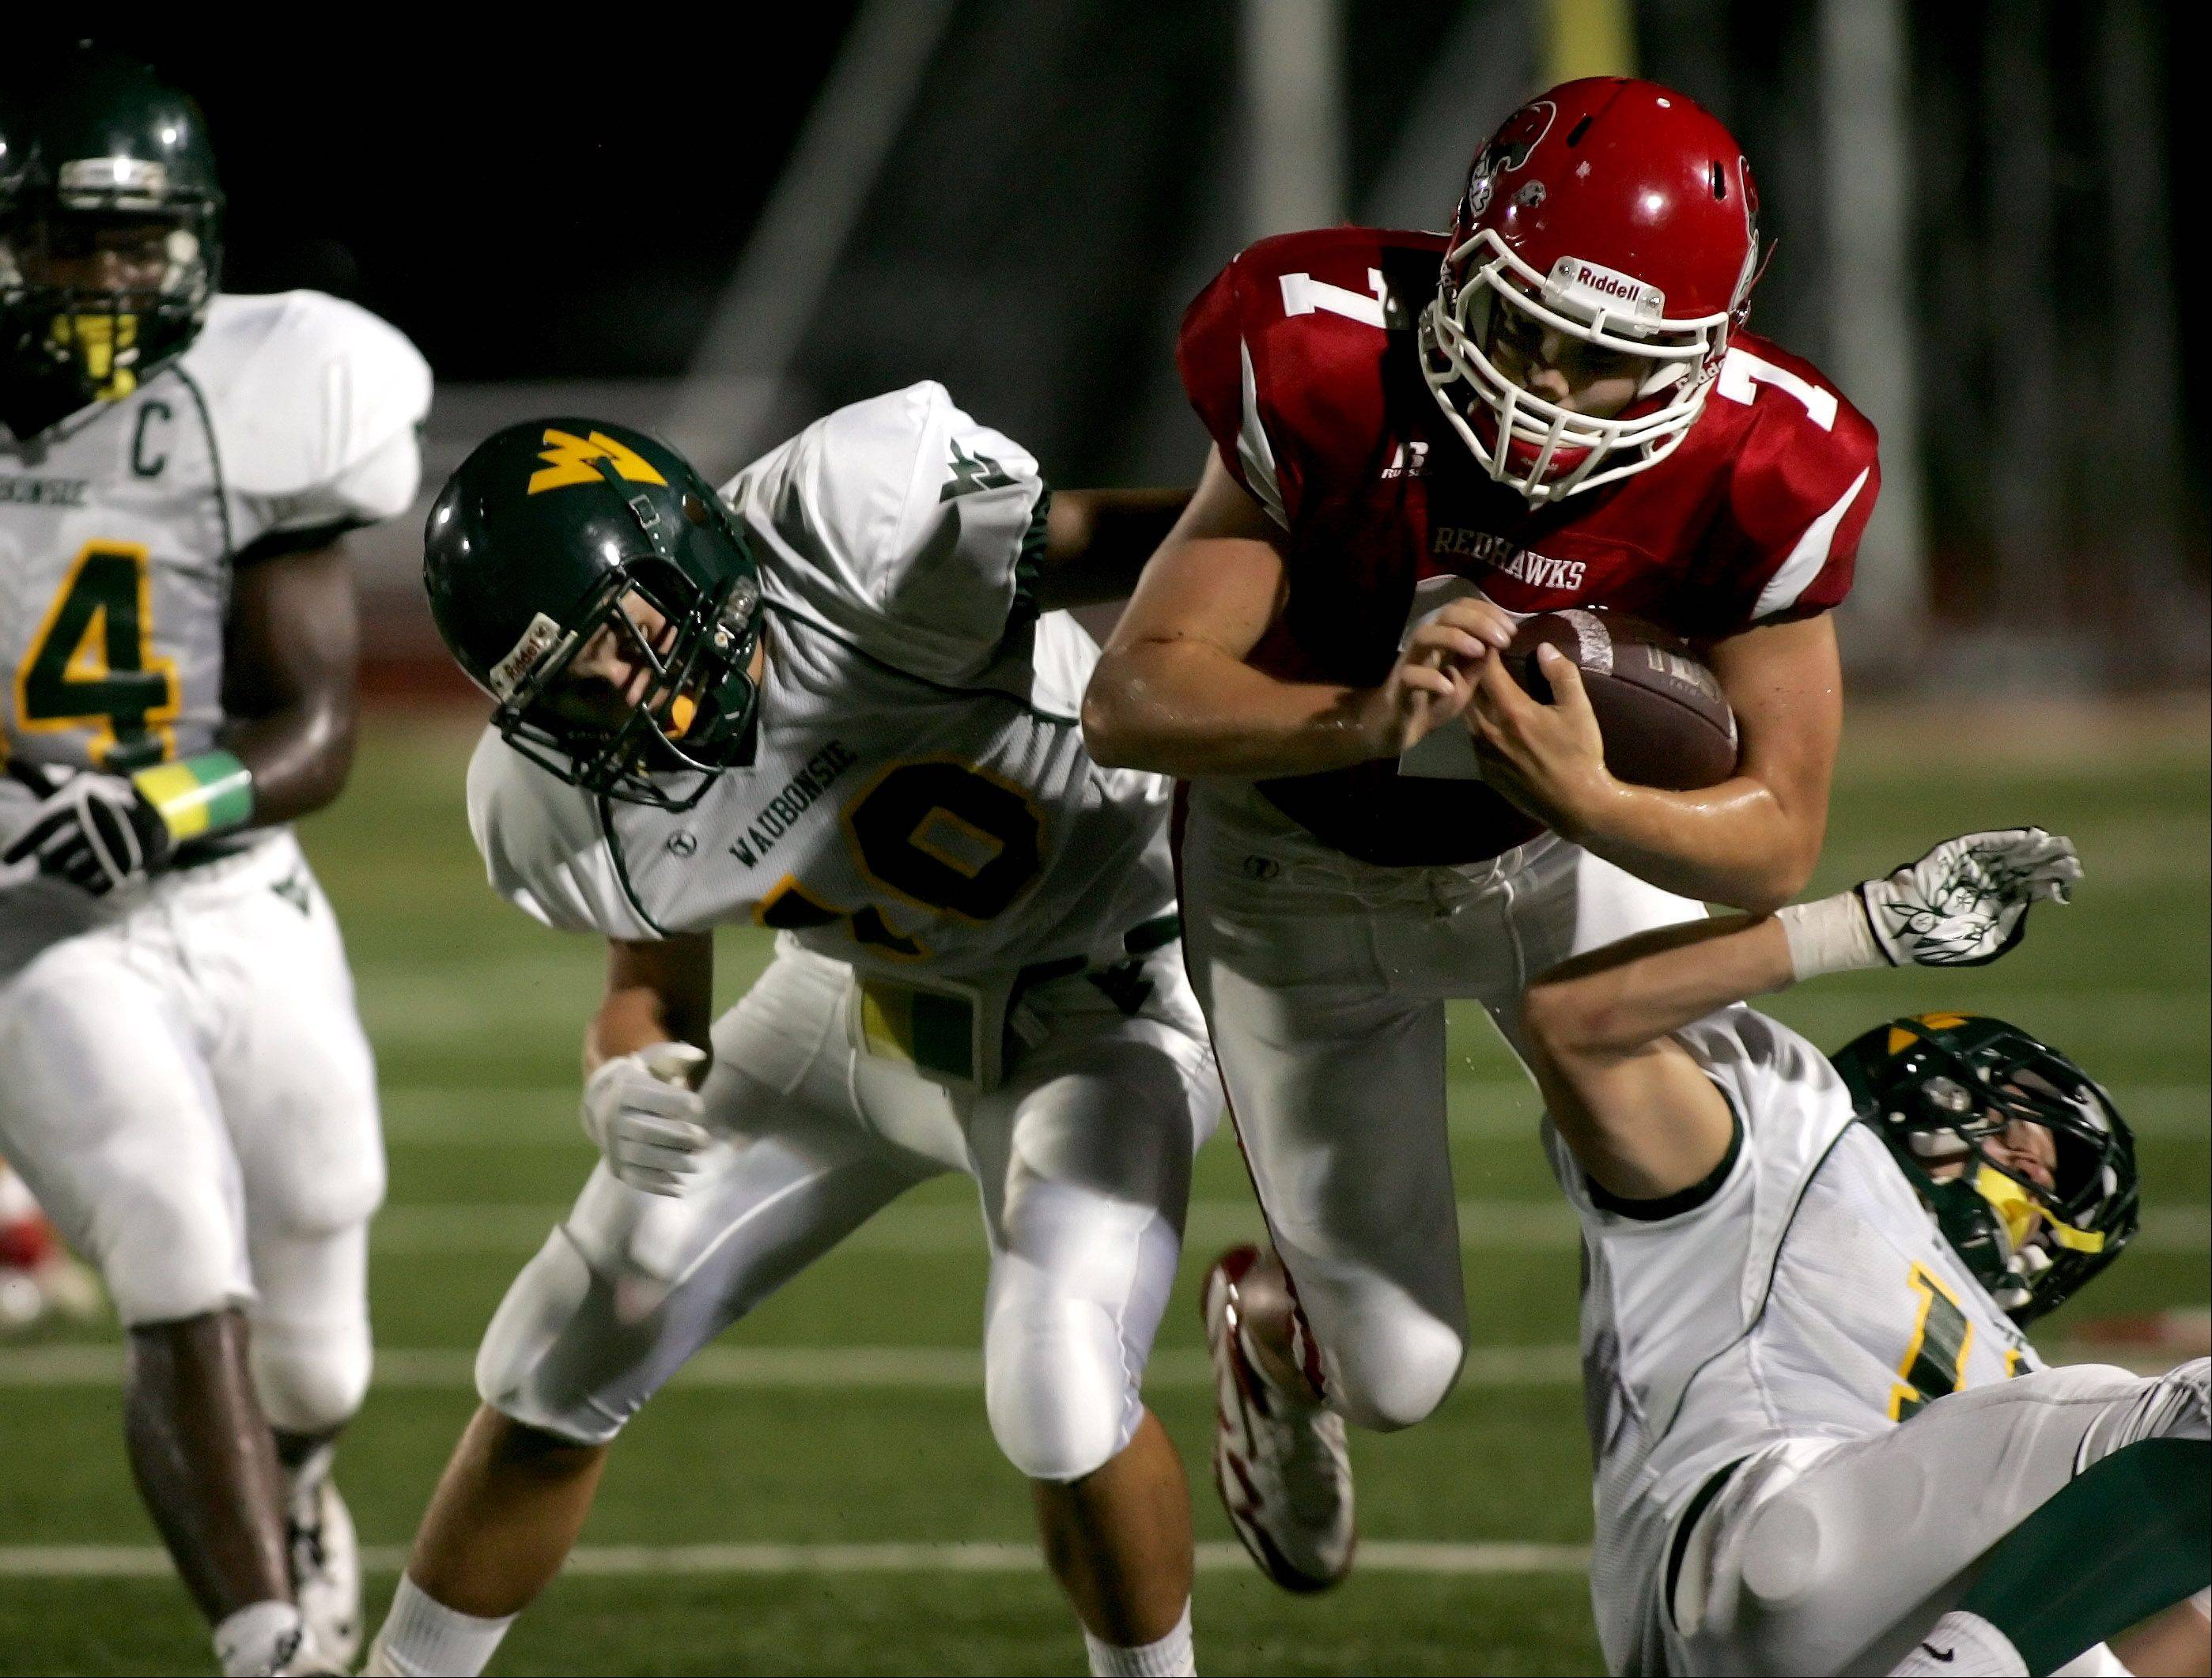 Week 1- Connor Mersch, left and Jim Delaney, right, of Waubonsie Valley tackle quarterback Ian Lewandowski of Naperville Central.